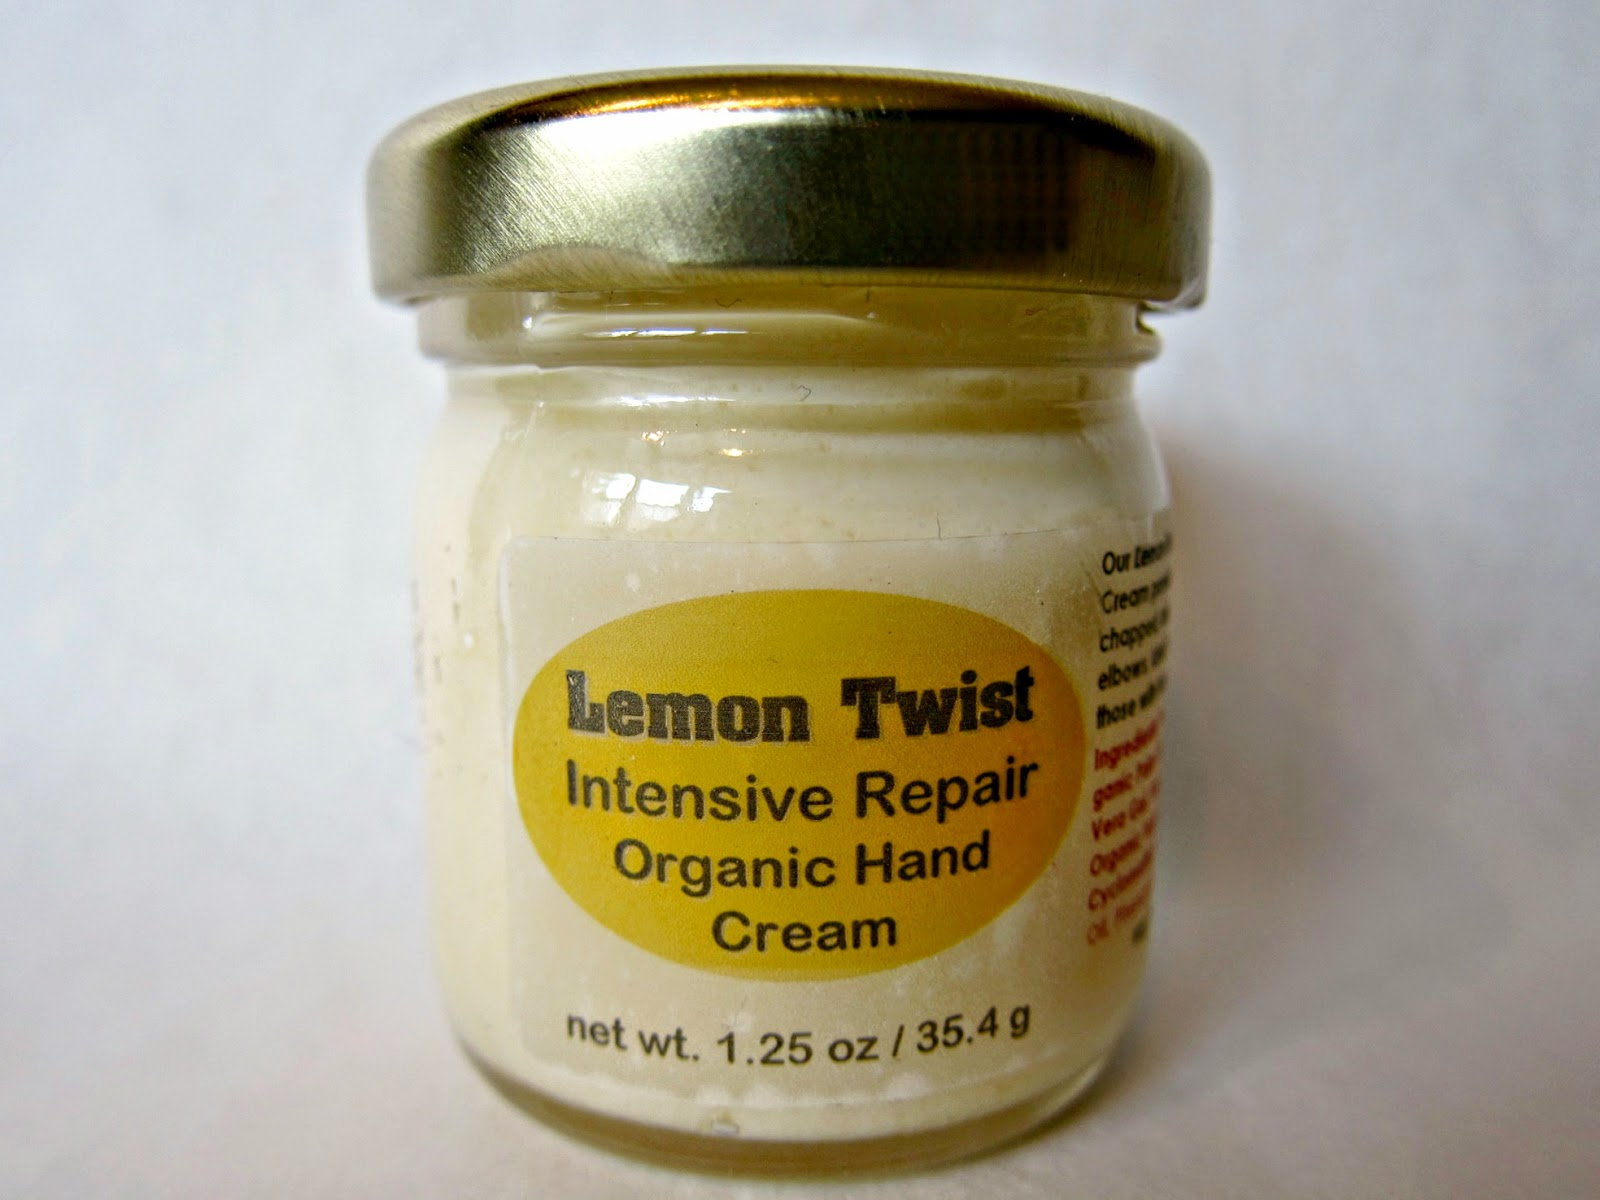 Lemon Twist Intensive Repair Hand Cream